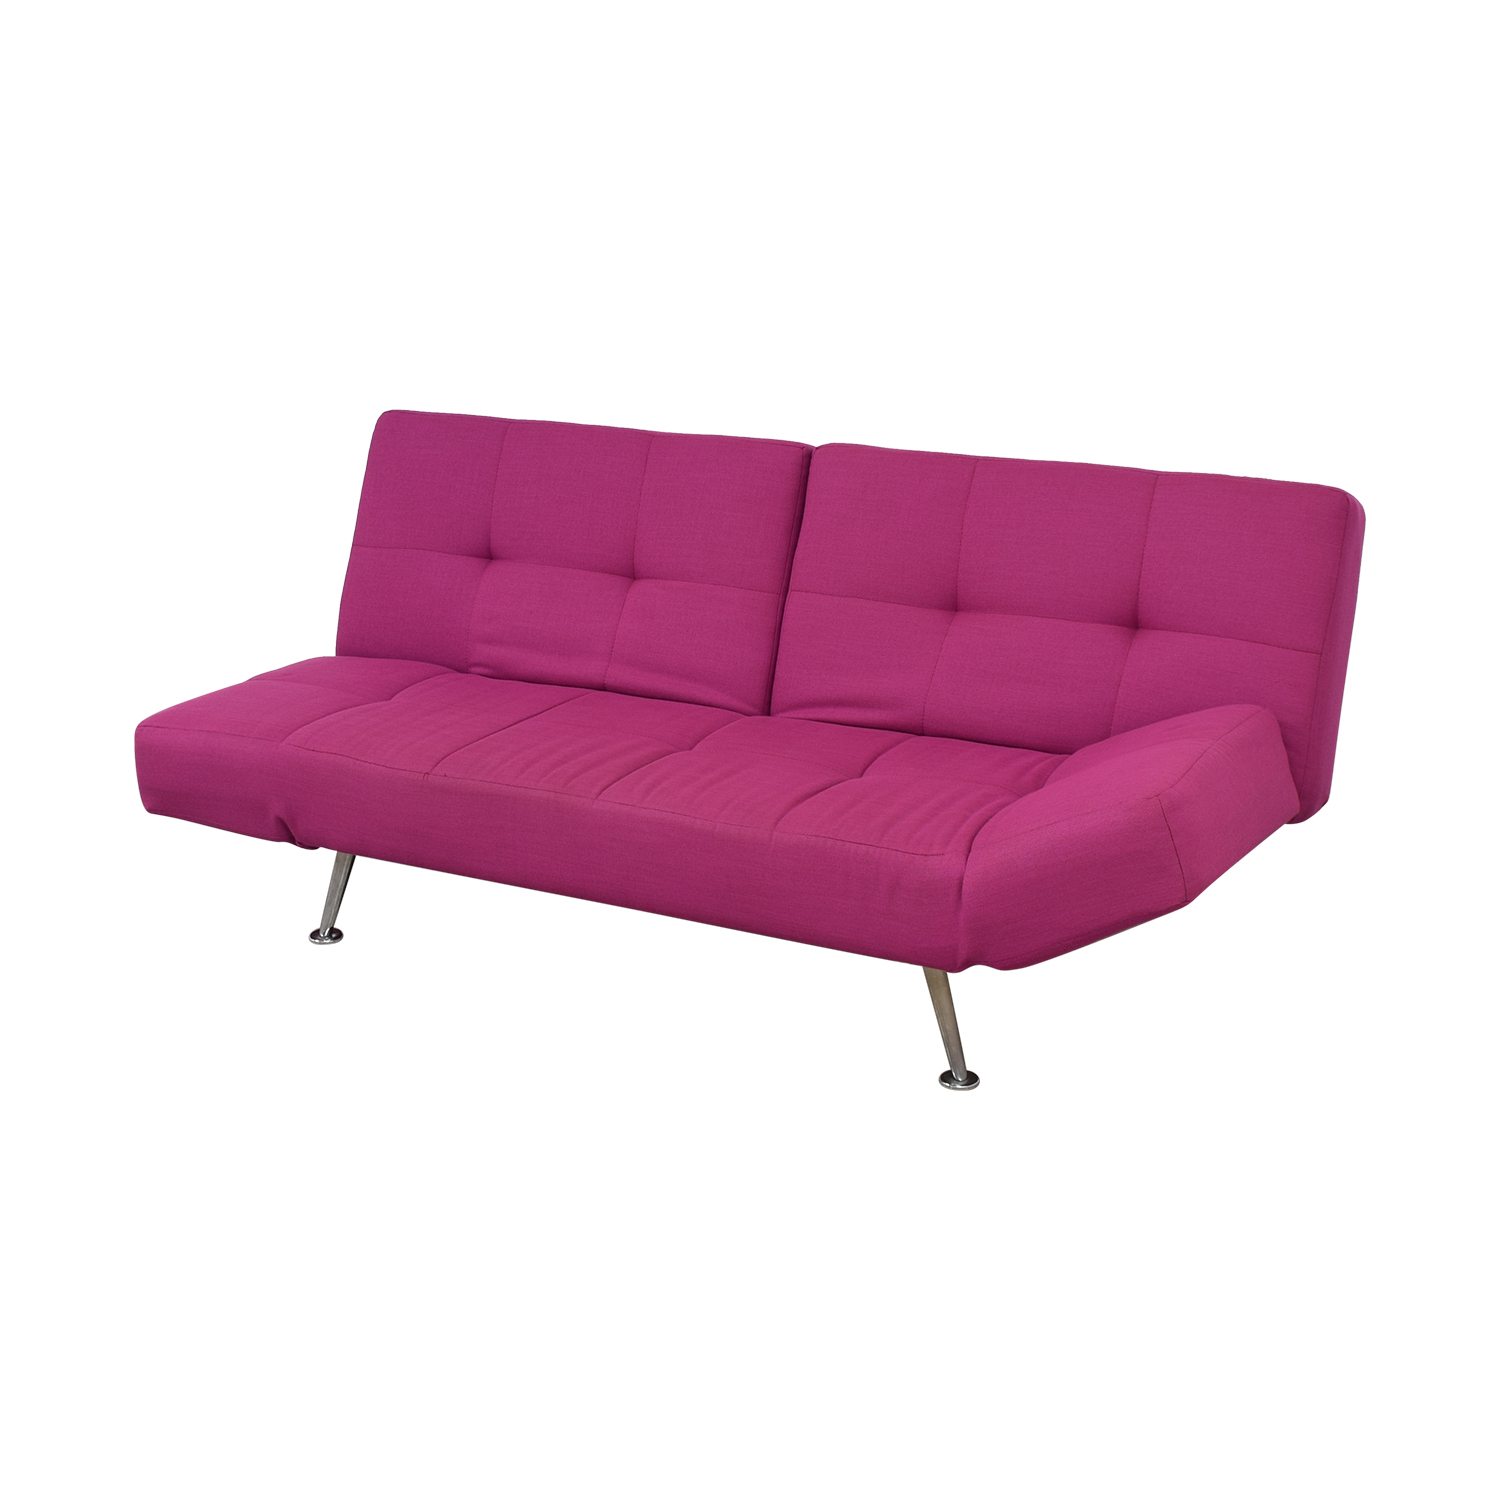 82 Off Lazzoni Lazzoni Magenta Tufted Sleeper Sofa Sofas